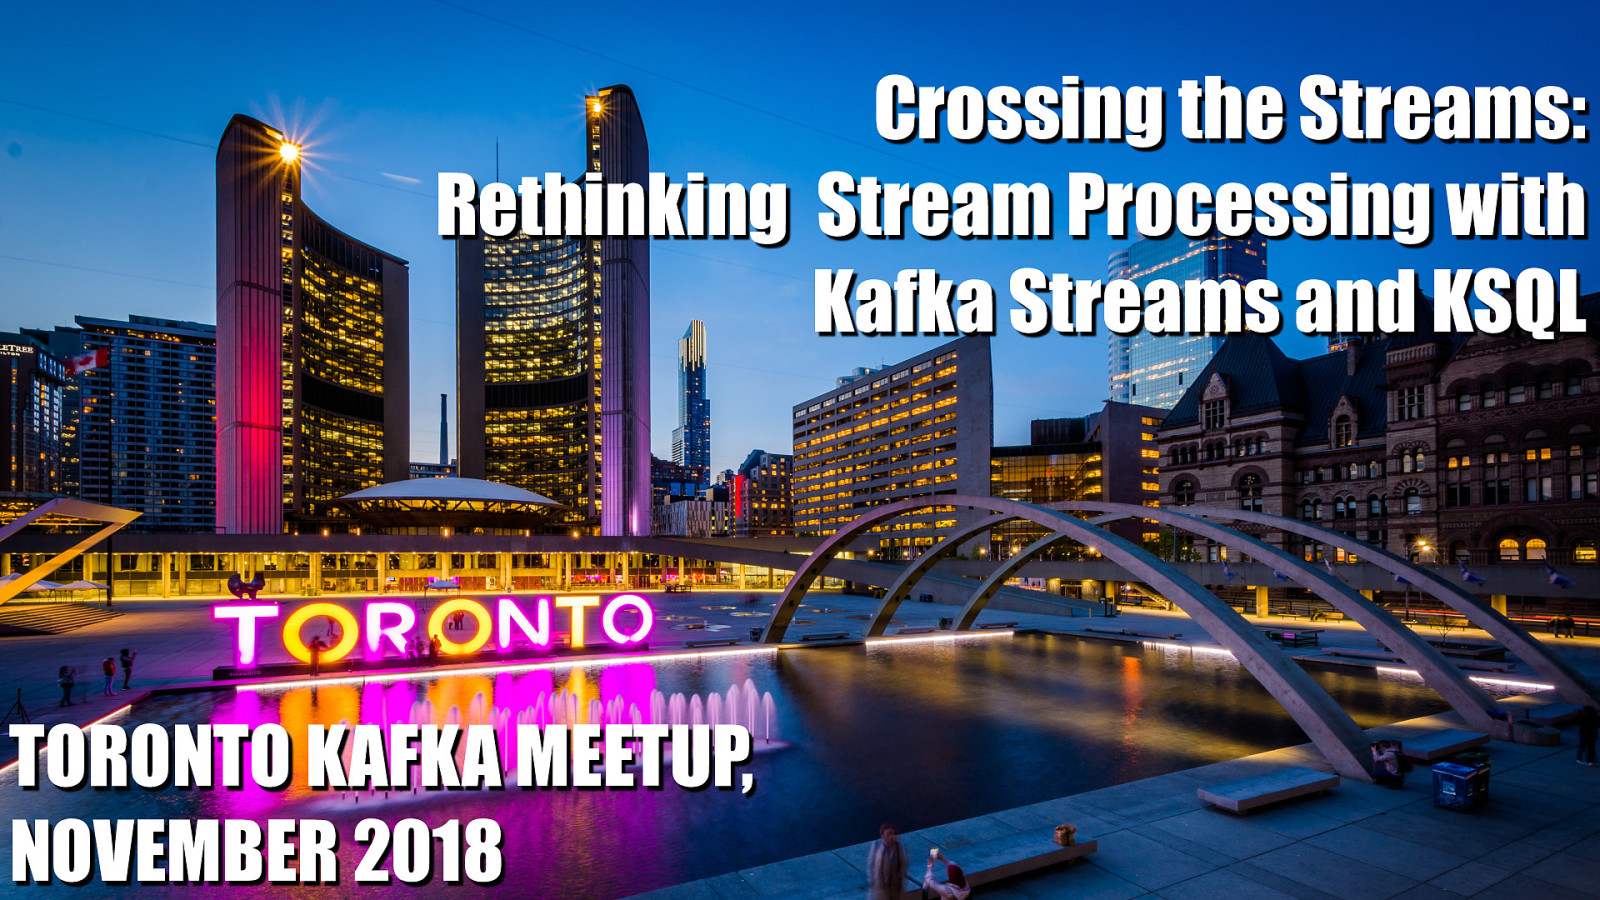 Crossing the Streams: Rethinking Stream Processing with KStreams and KSQL